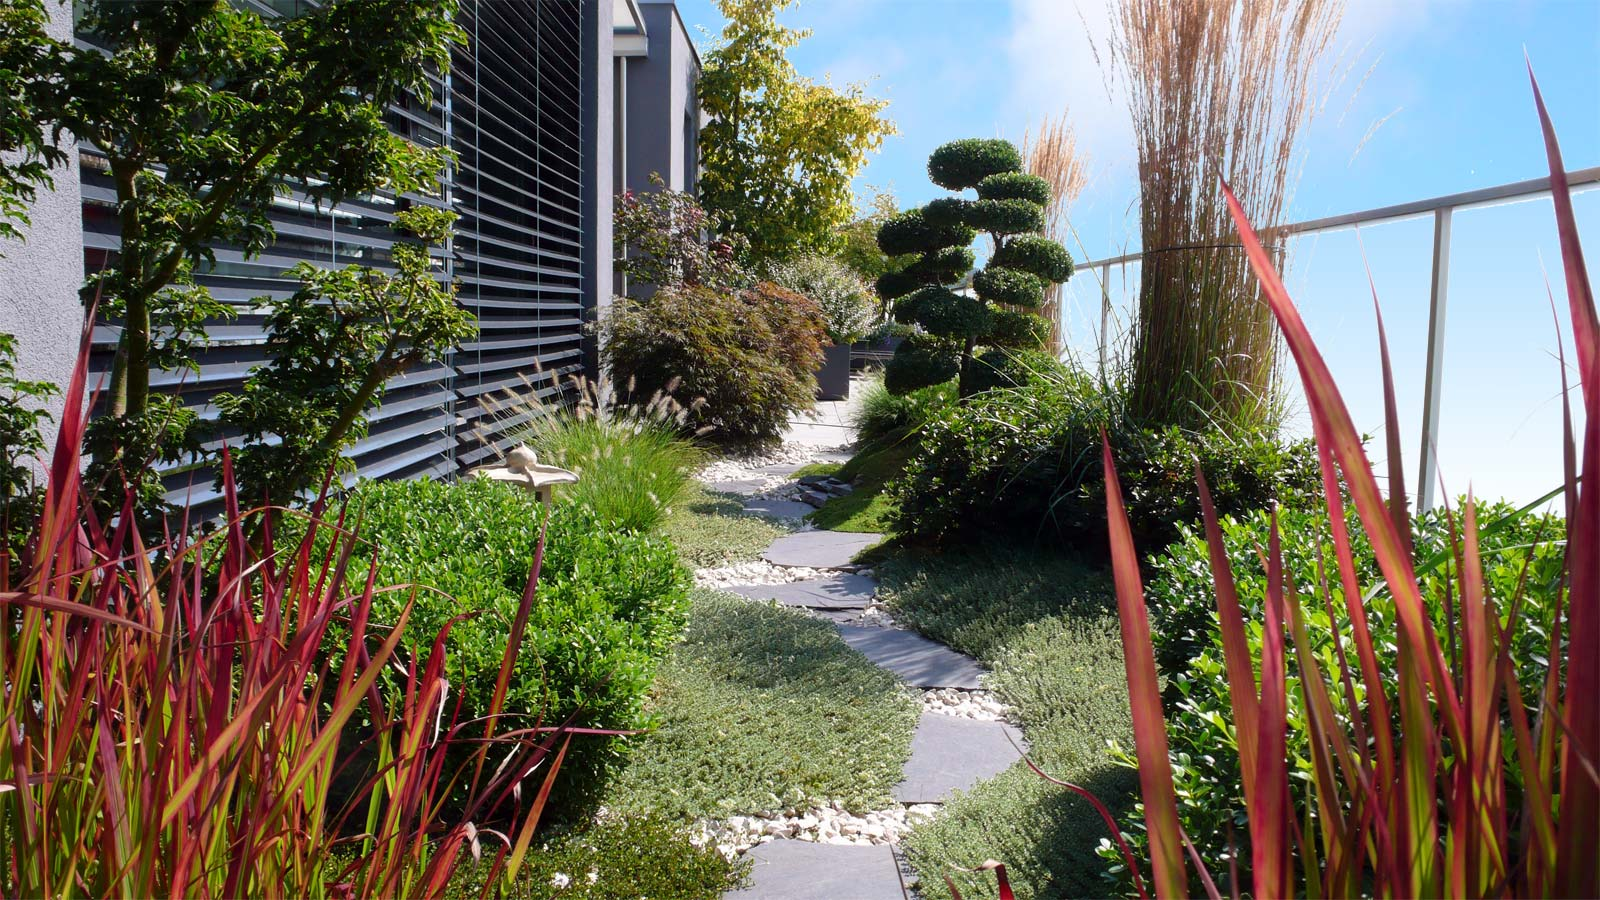 Terrace planting and planning with veranda viva, Swiss